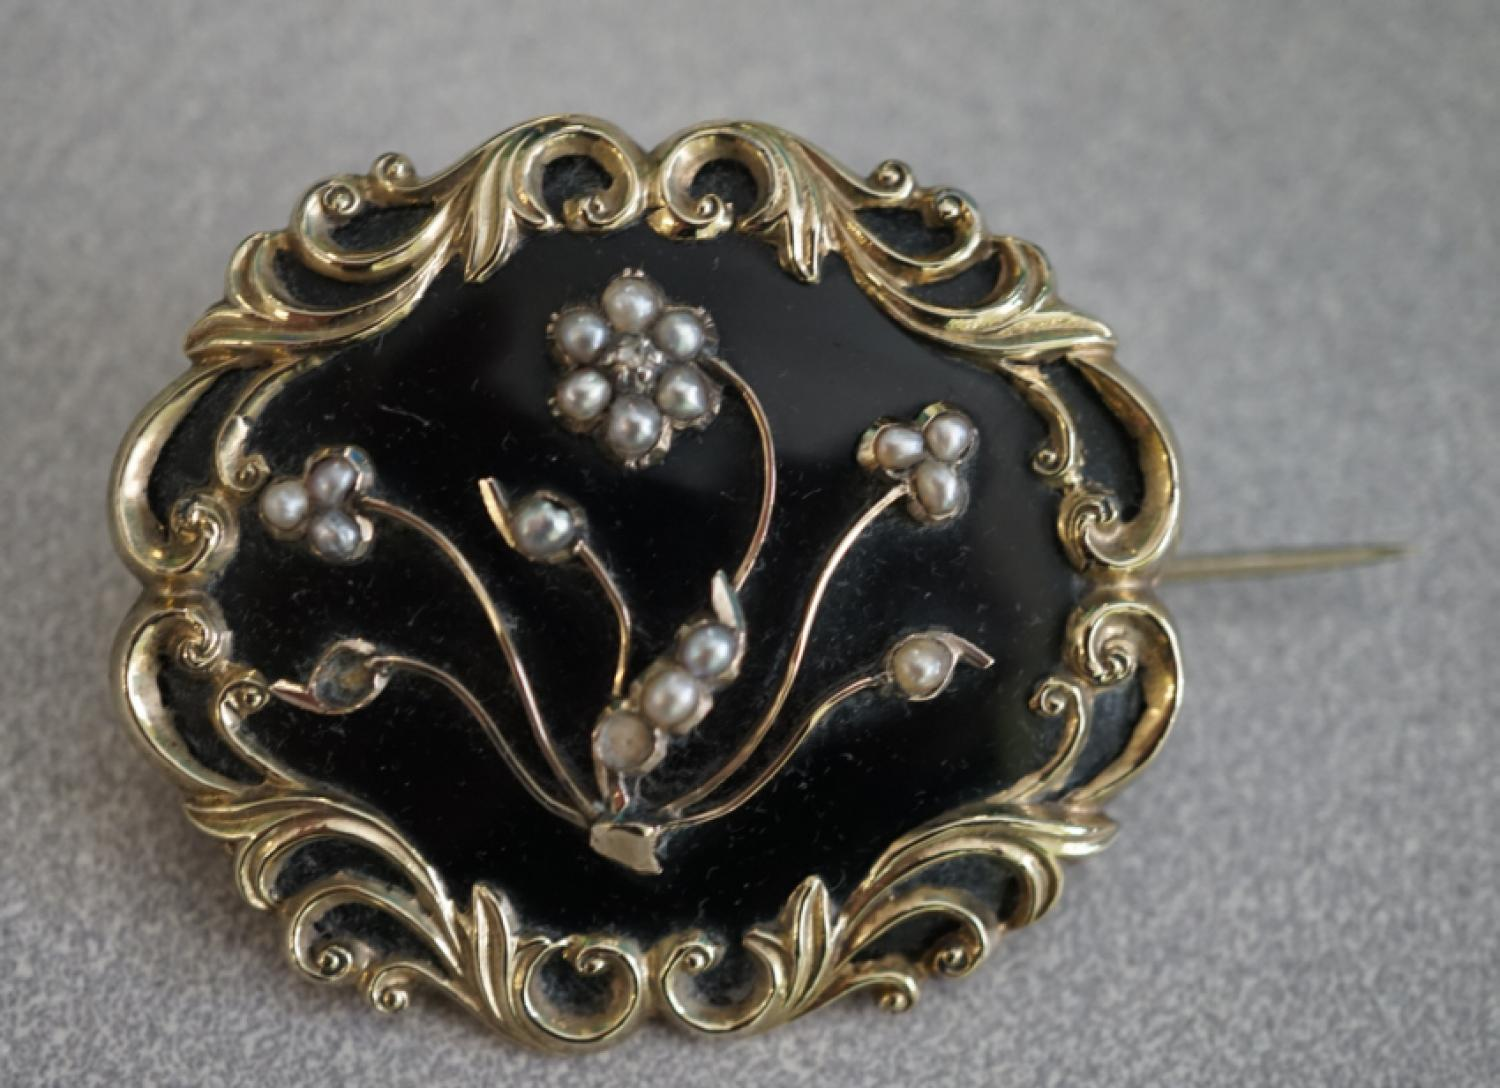 Antique Victorian mourning brooch gold and black enamel c1850